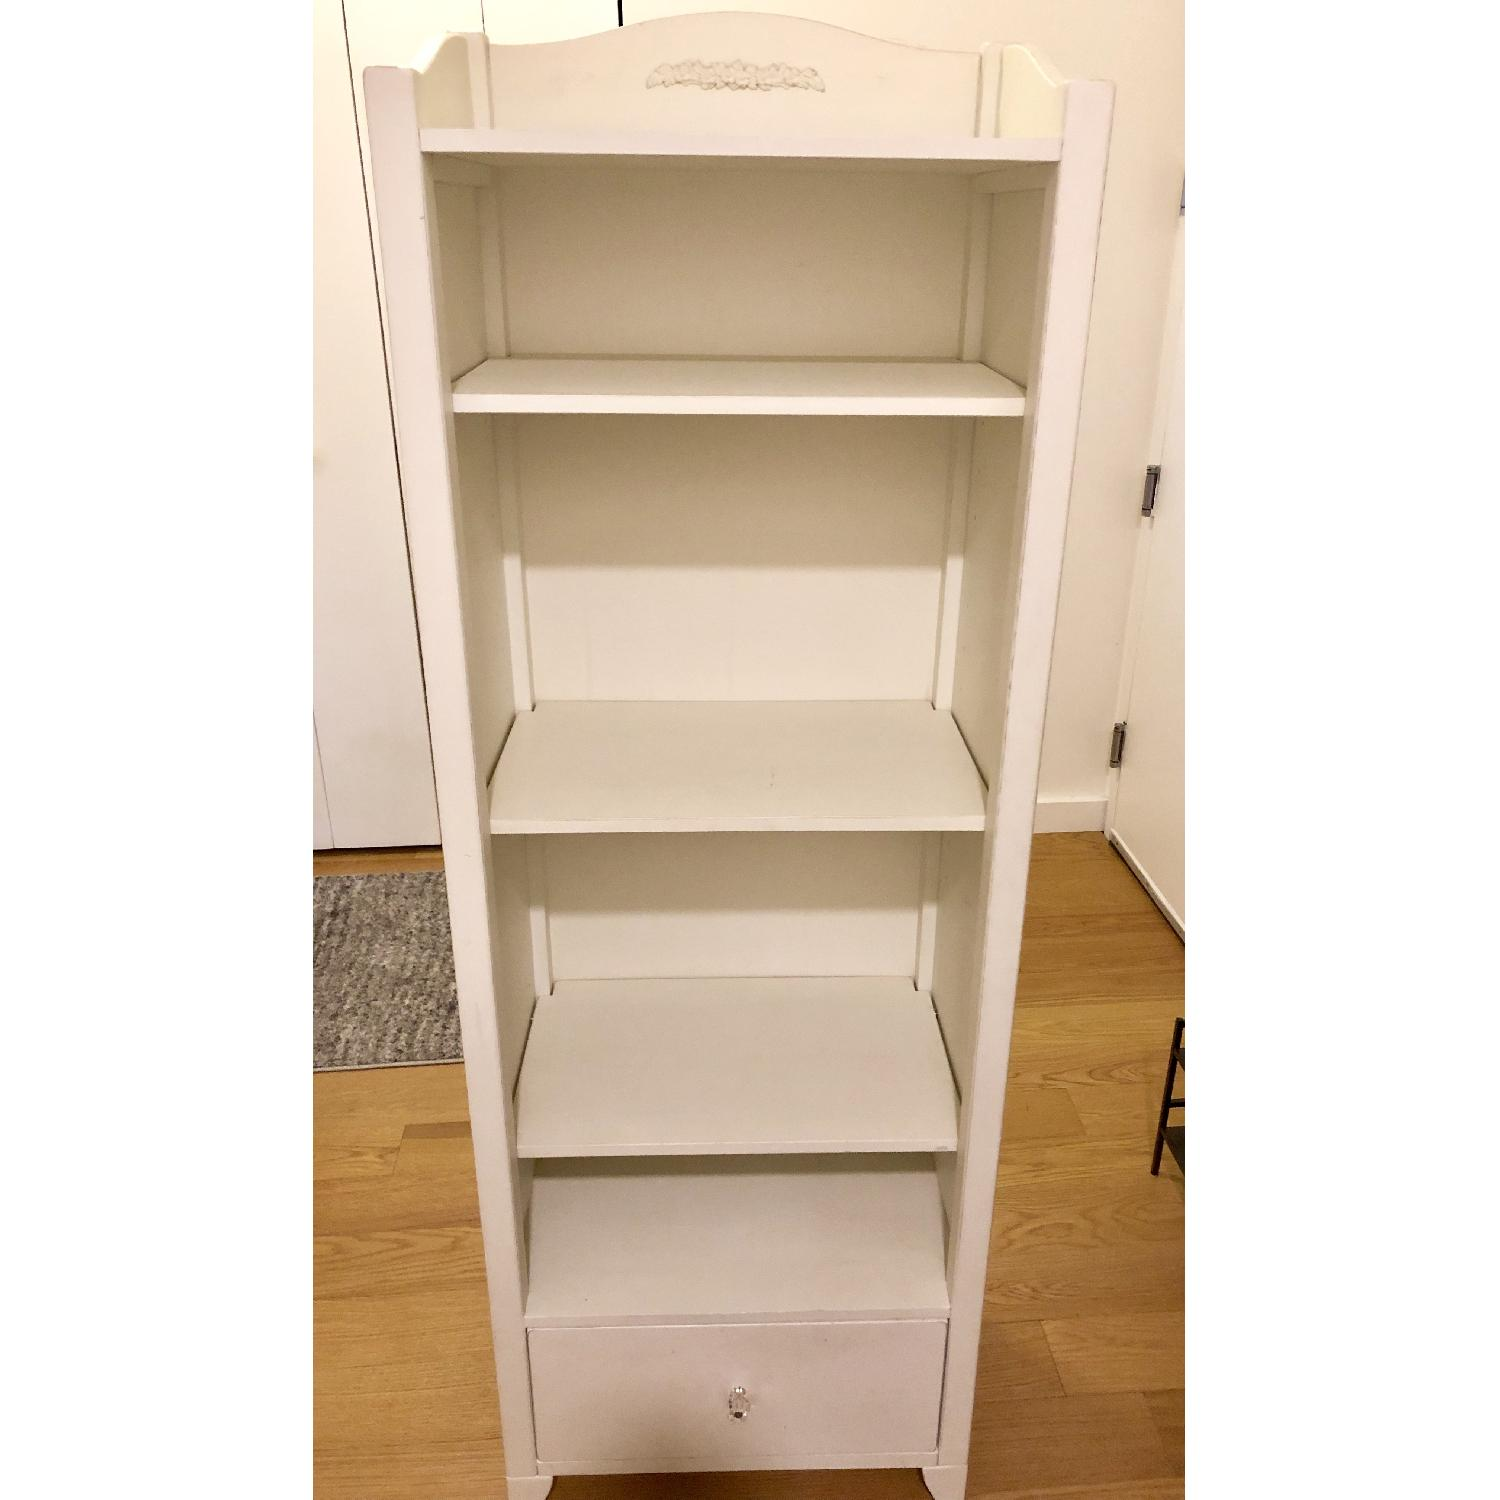 Pottery Barn PB Teen Chelsea White Tower Bookcase - image-1